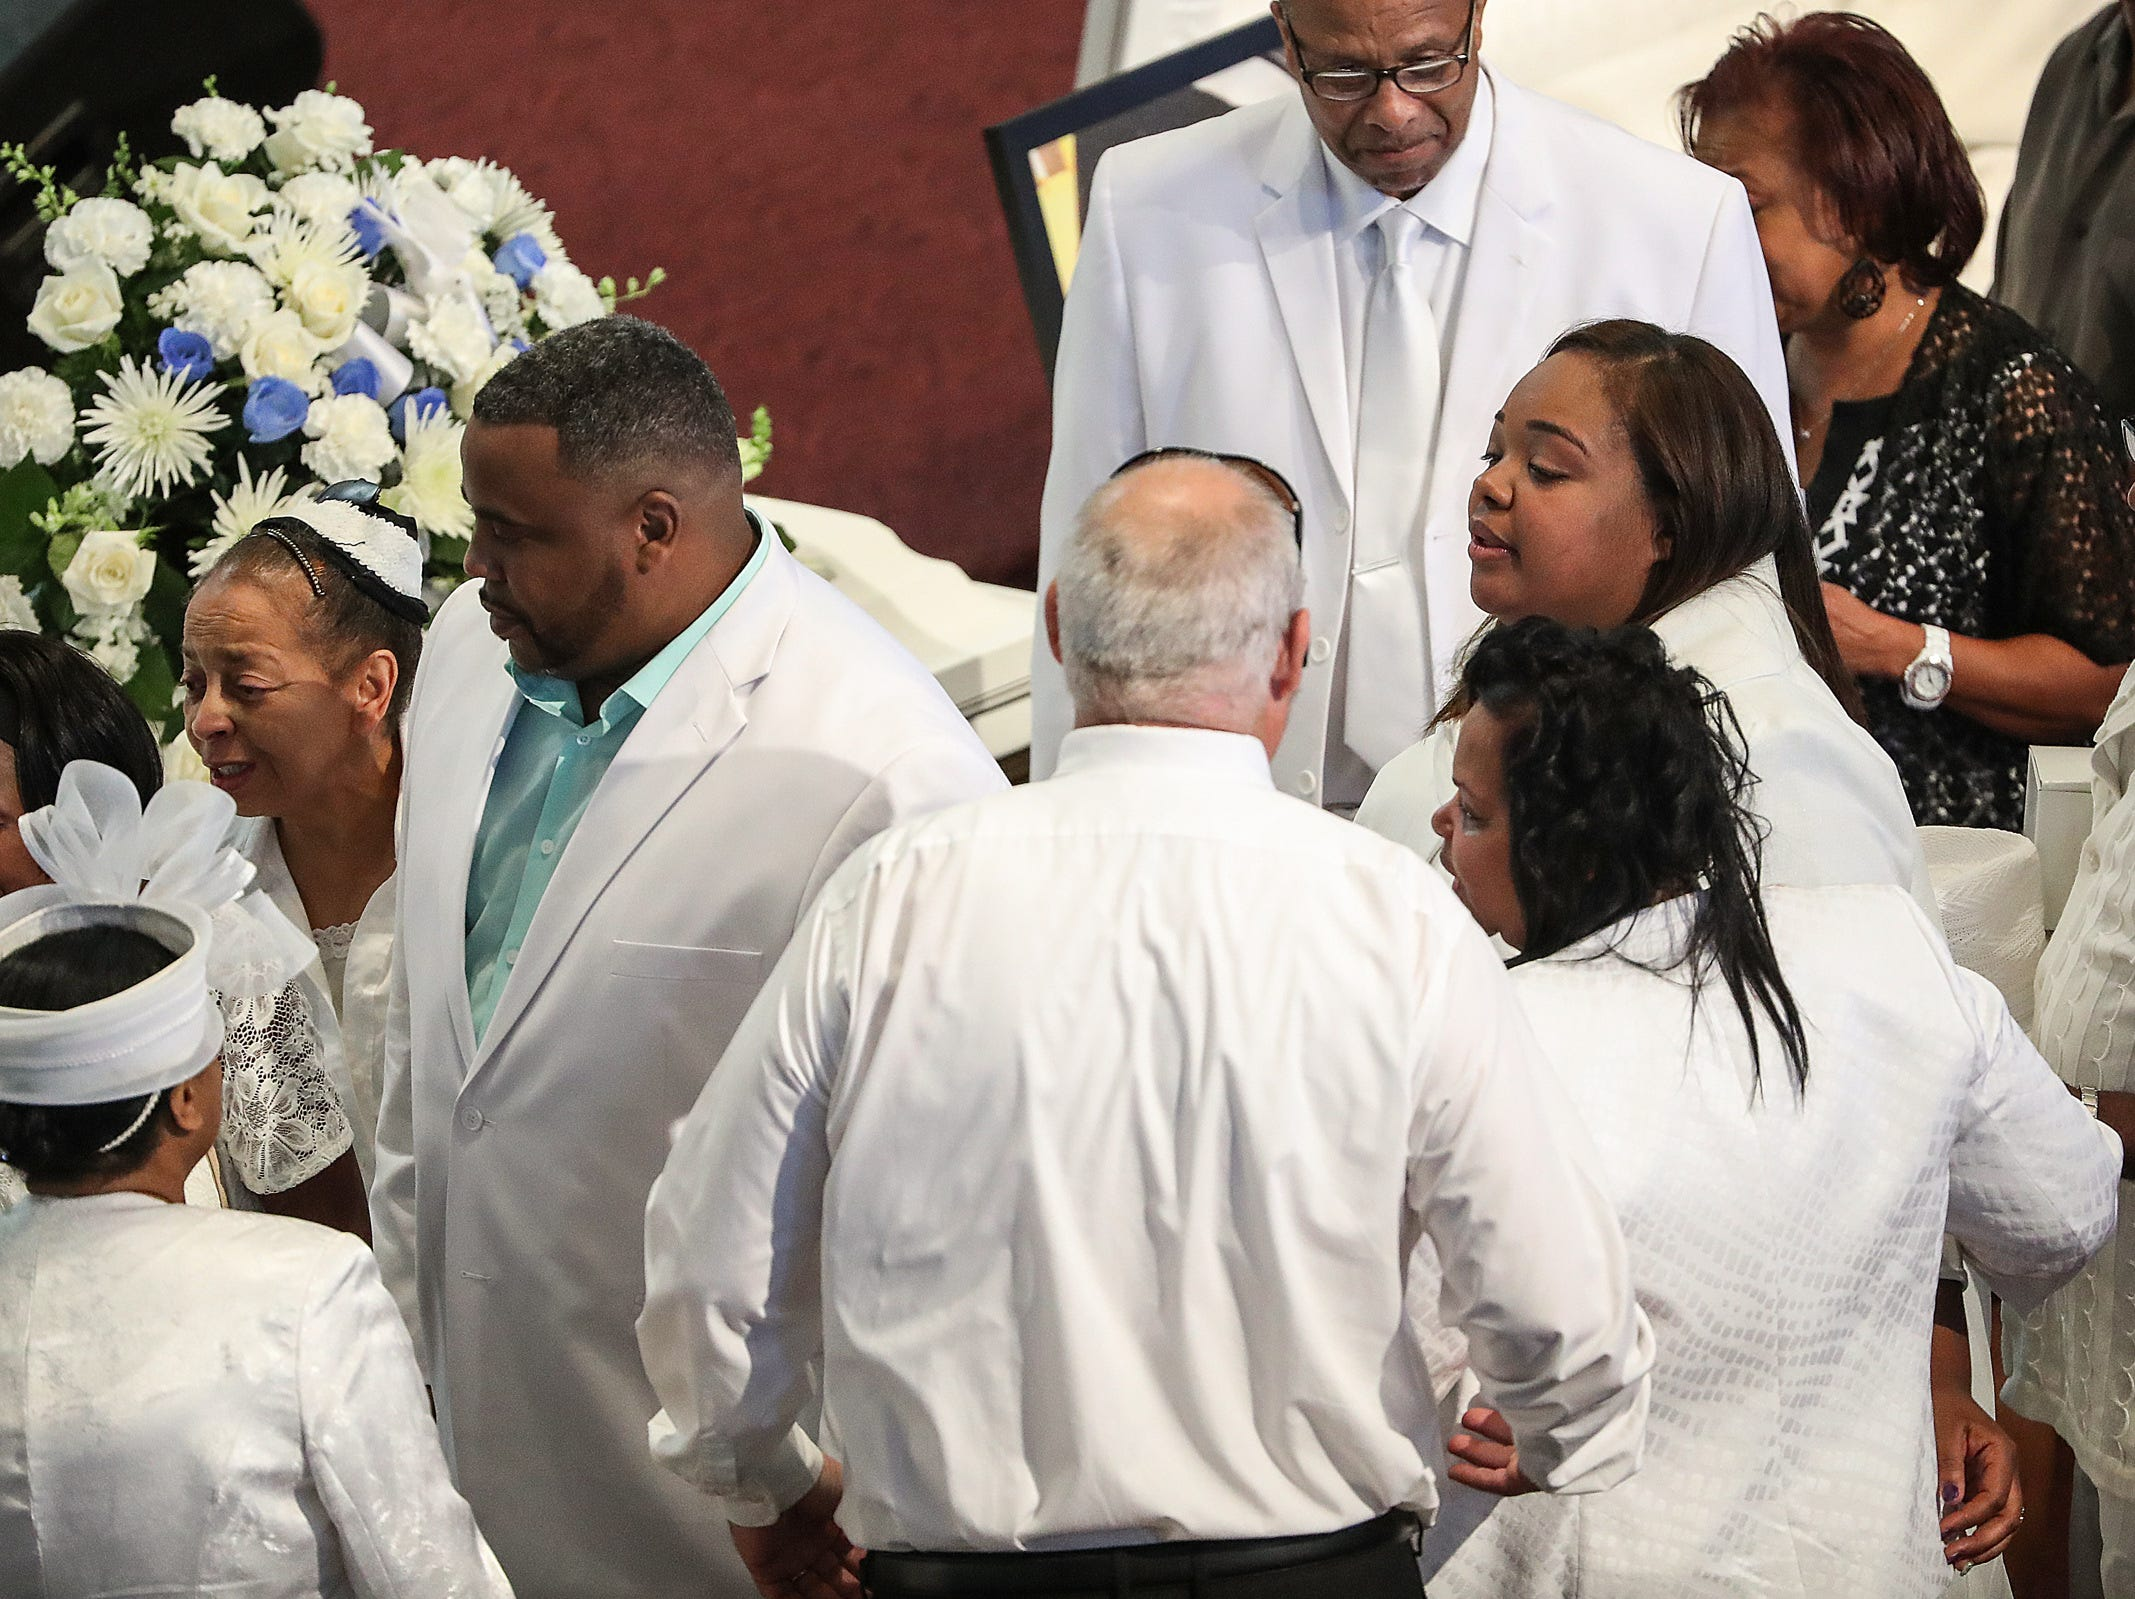 Tia Coleman, right, and other family and friends gather for the homegoing service of Tia's husband Glenn Coleman, 40, and children Reece, 9, Evan, 7, and Arya, 1, at Grace Apostolic Church on Friday, July 27, 2018. Seventeen people were killed in the duck boat incident in Branson, Missouri, nine of them were members of the Coleman family.